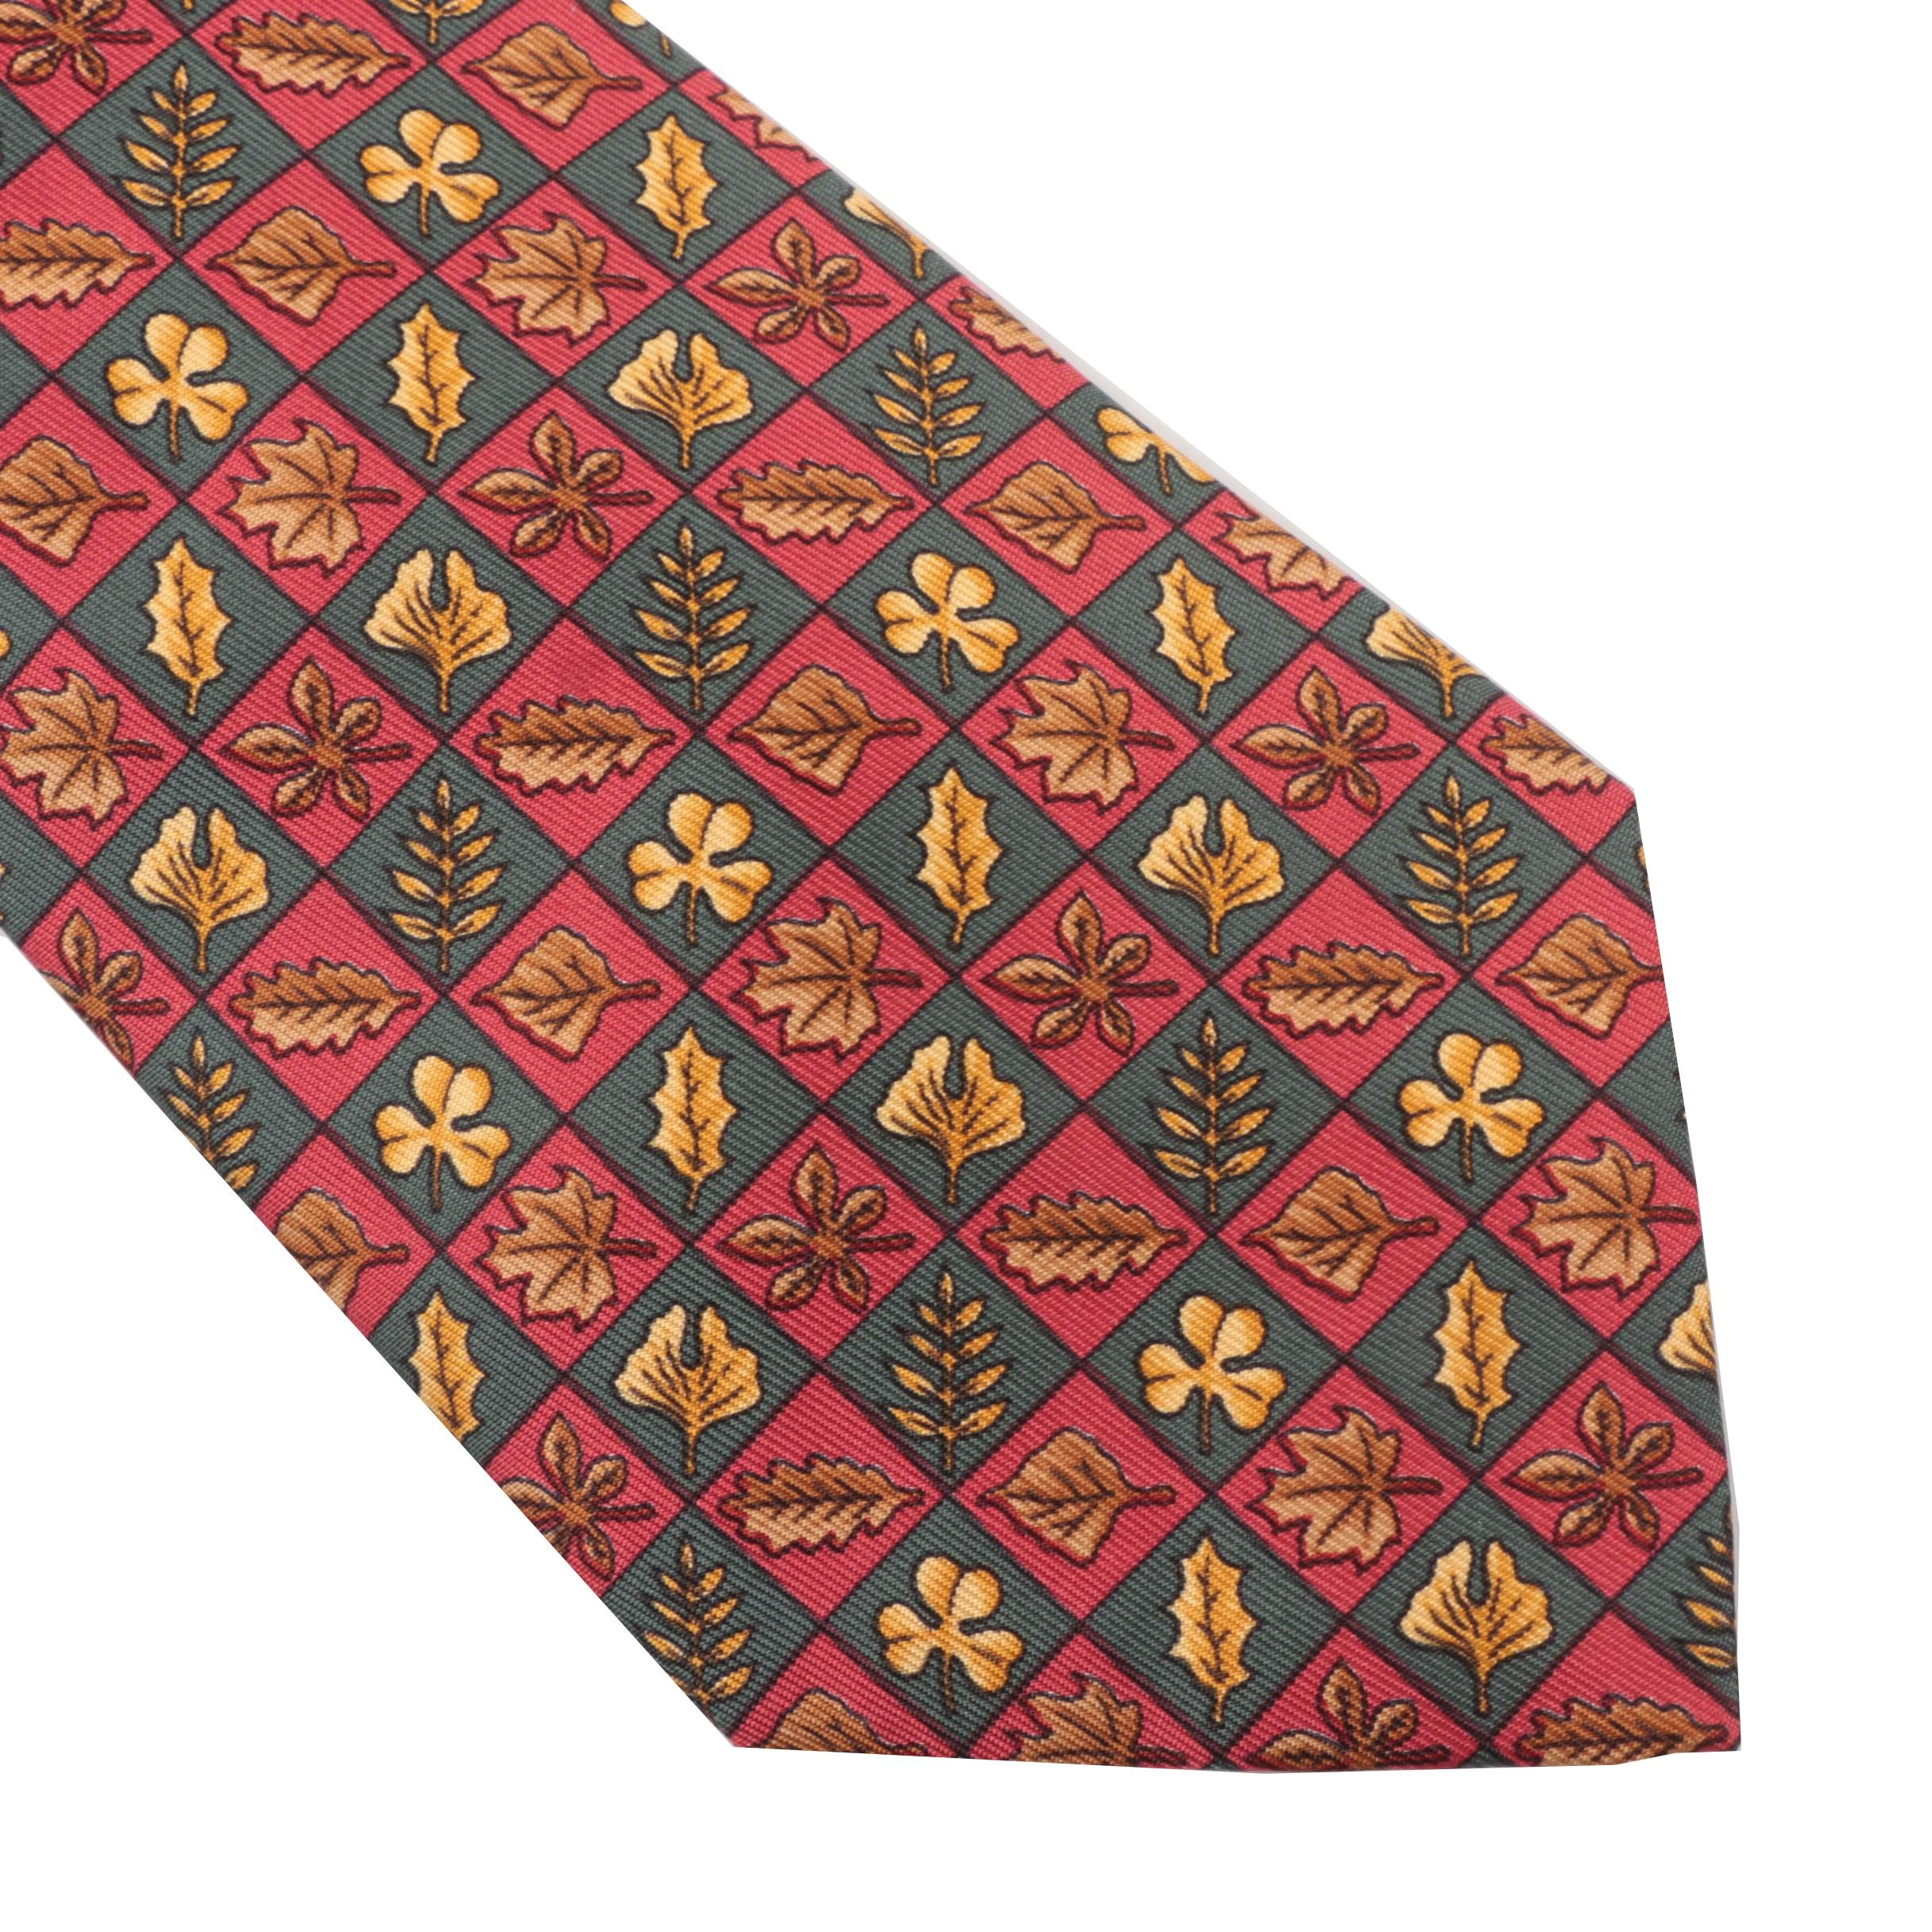 Hermès Leaf Silk Necktie, Pattern  7724 OA, Made in France